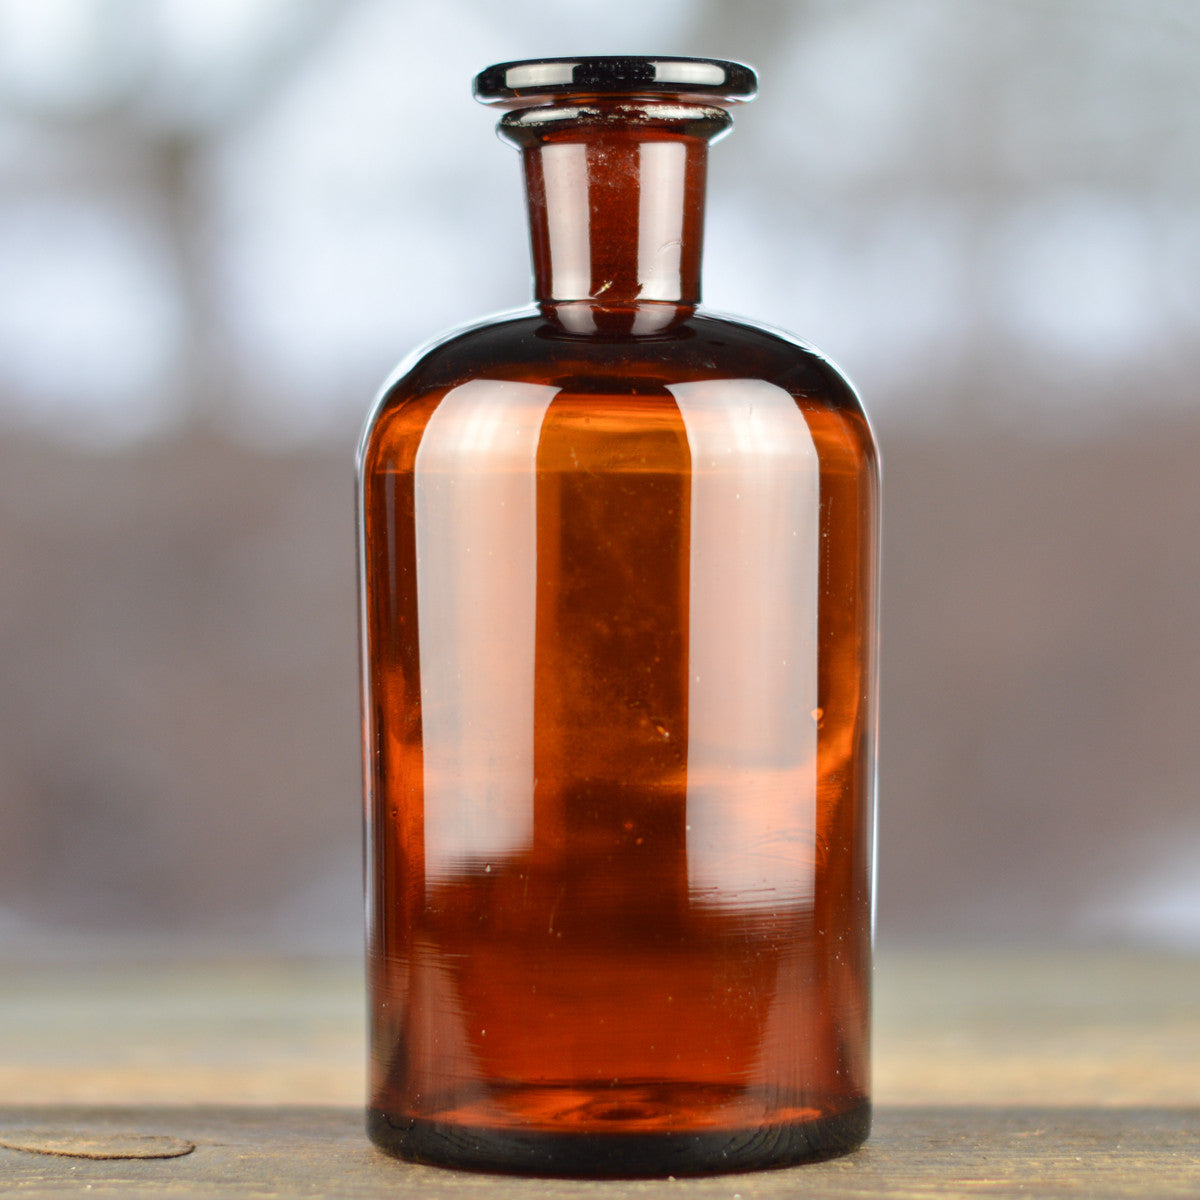 1930's - 1940's Apothecary Jar with Round Stopper